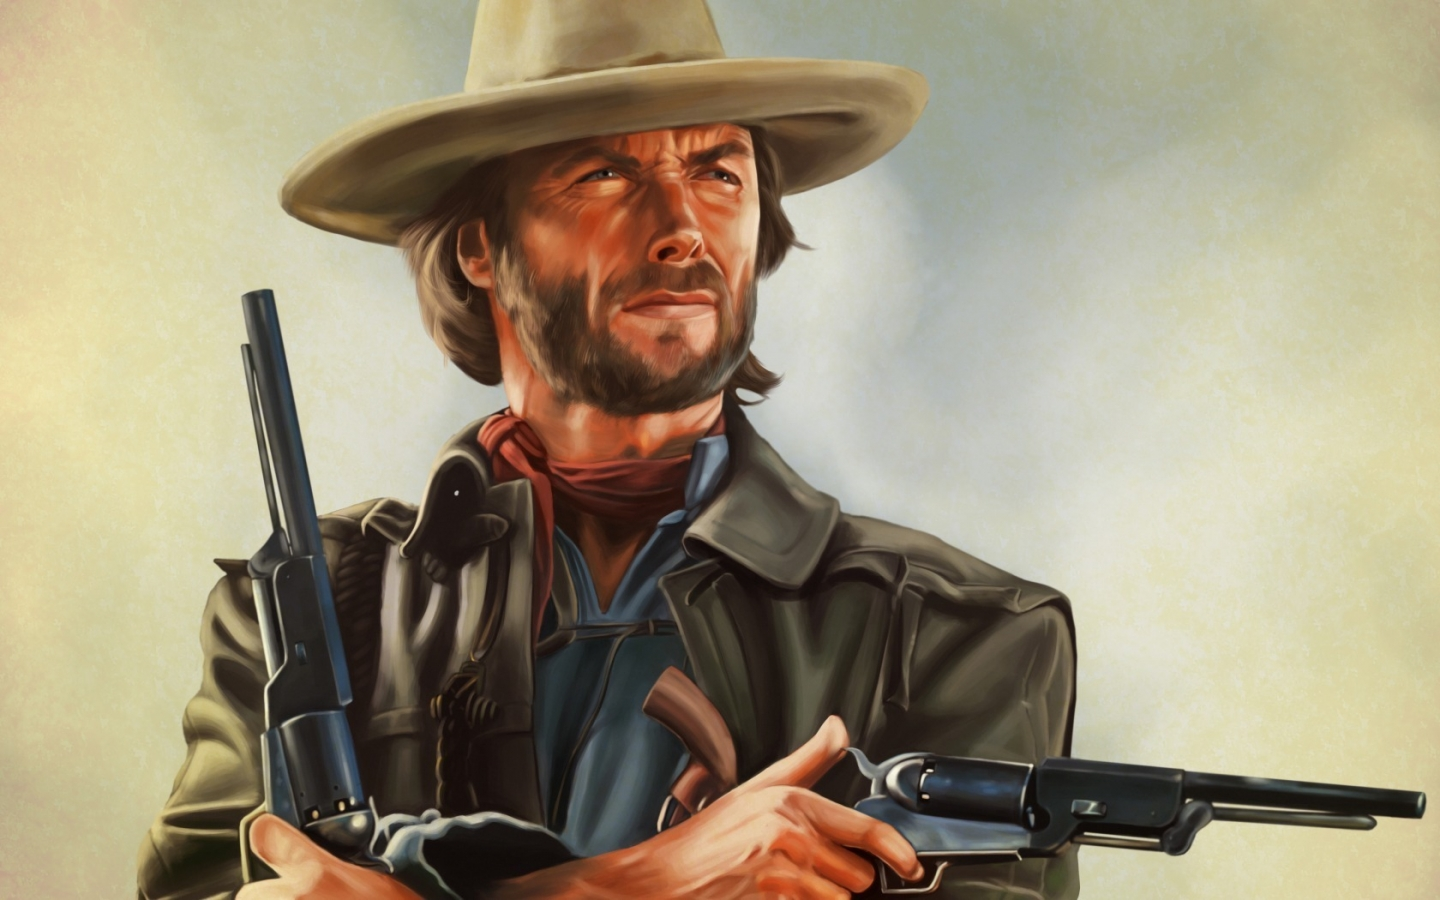 Clint Eastwood Artwork for 1440 x 900 widescreen resolution